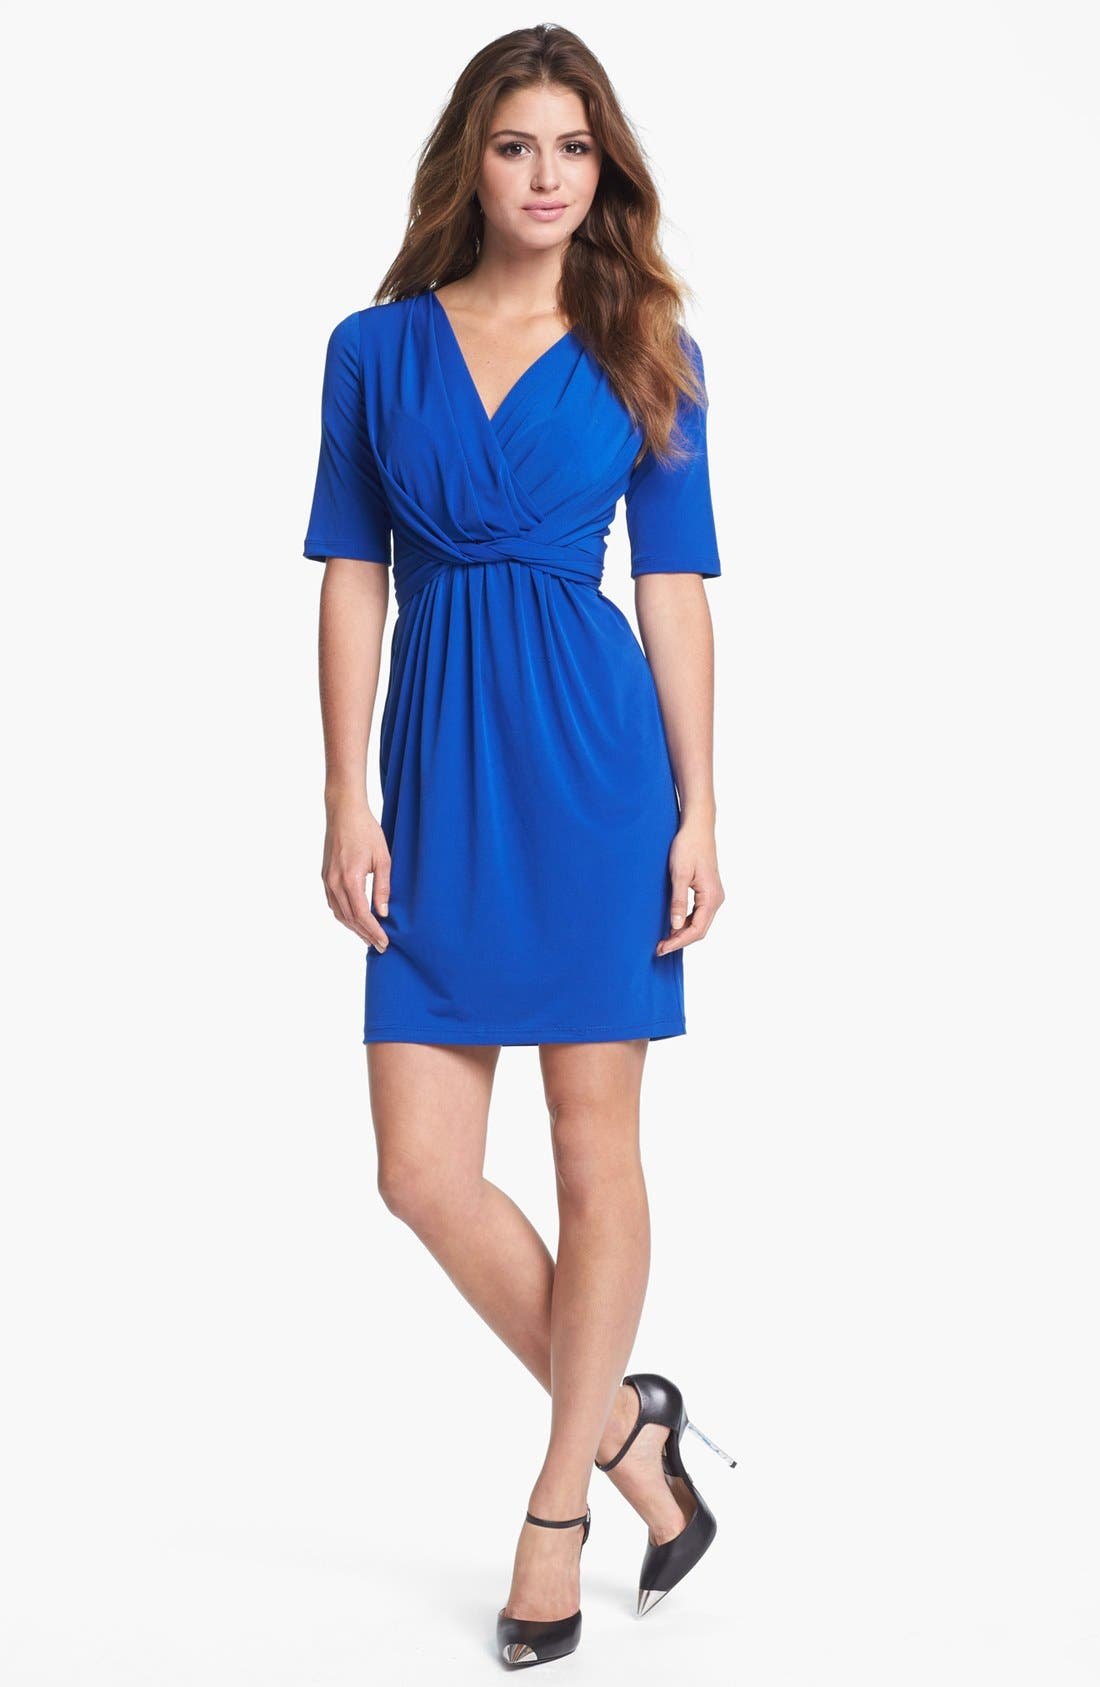 Alternate Image 1 Selected - Ivy & Blu Knot Front Jersey Dress (Petite)